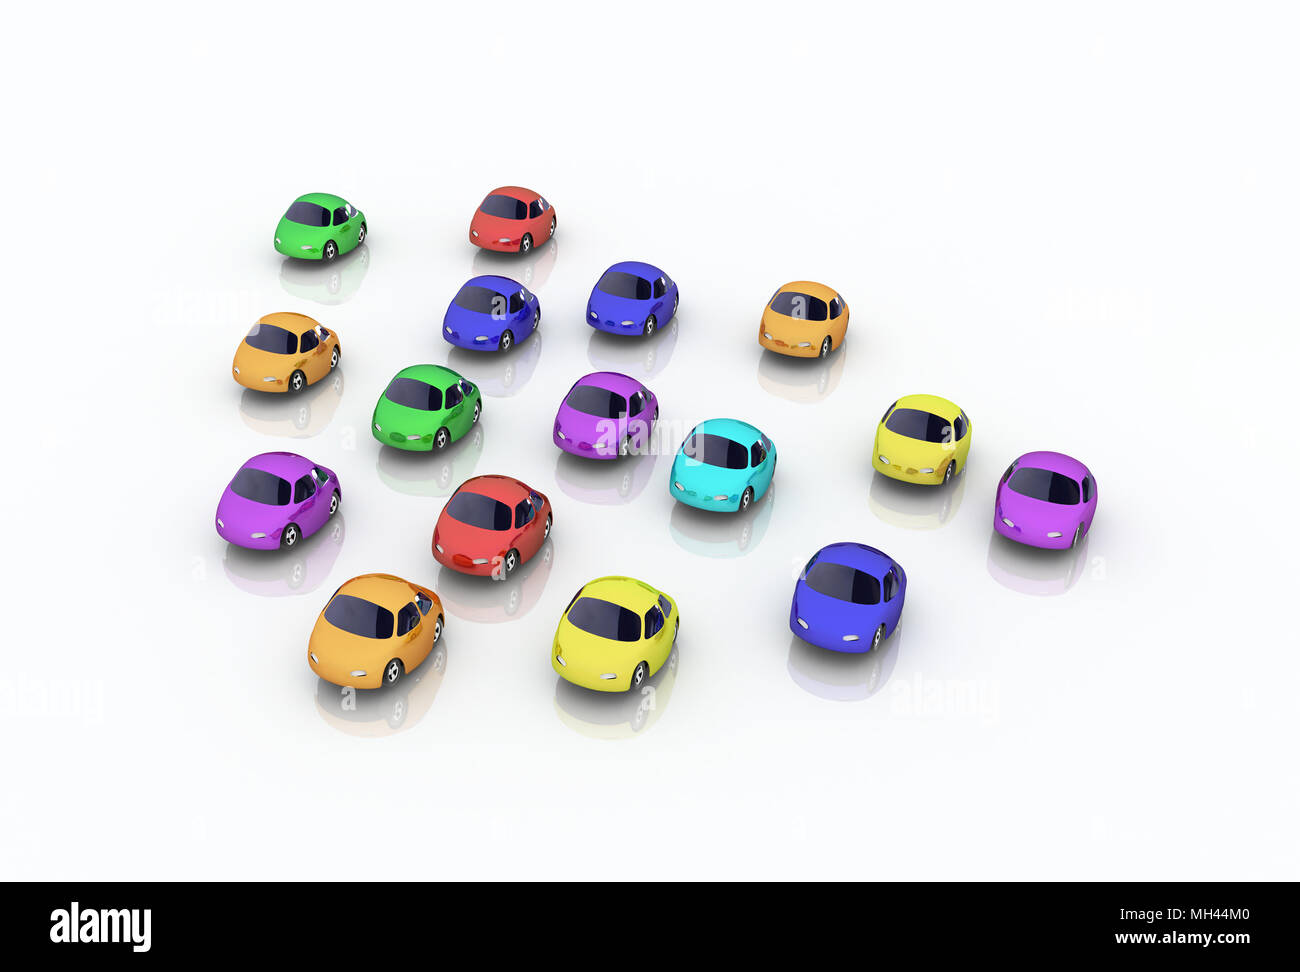 Group of Colored 3d Cartoon Cars - Stock Image